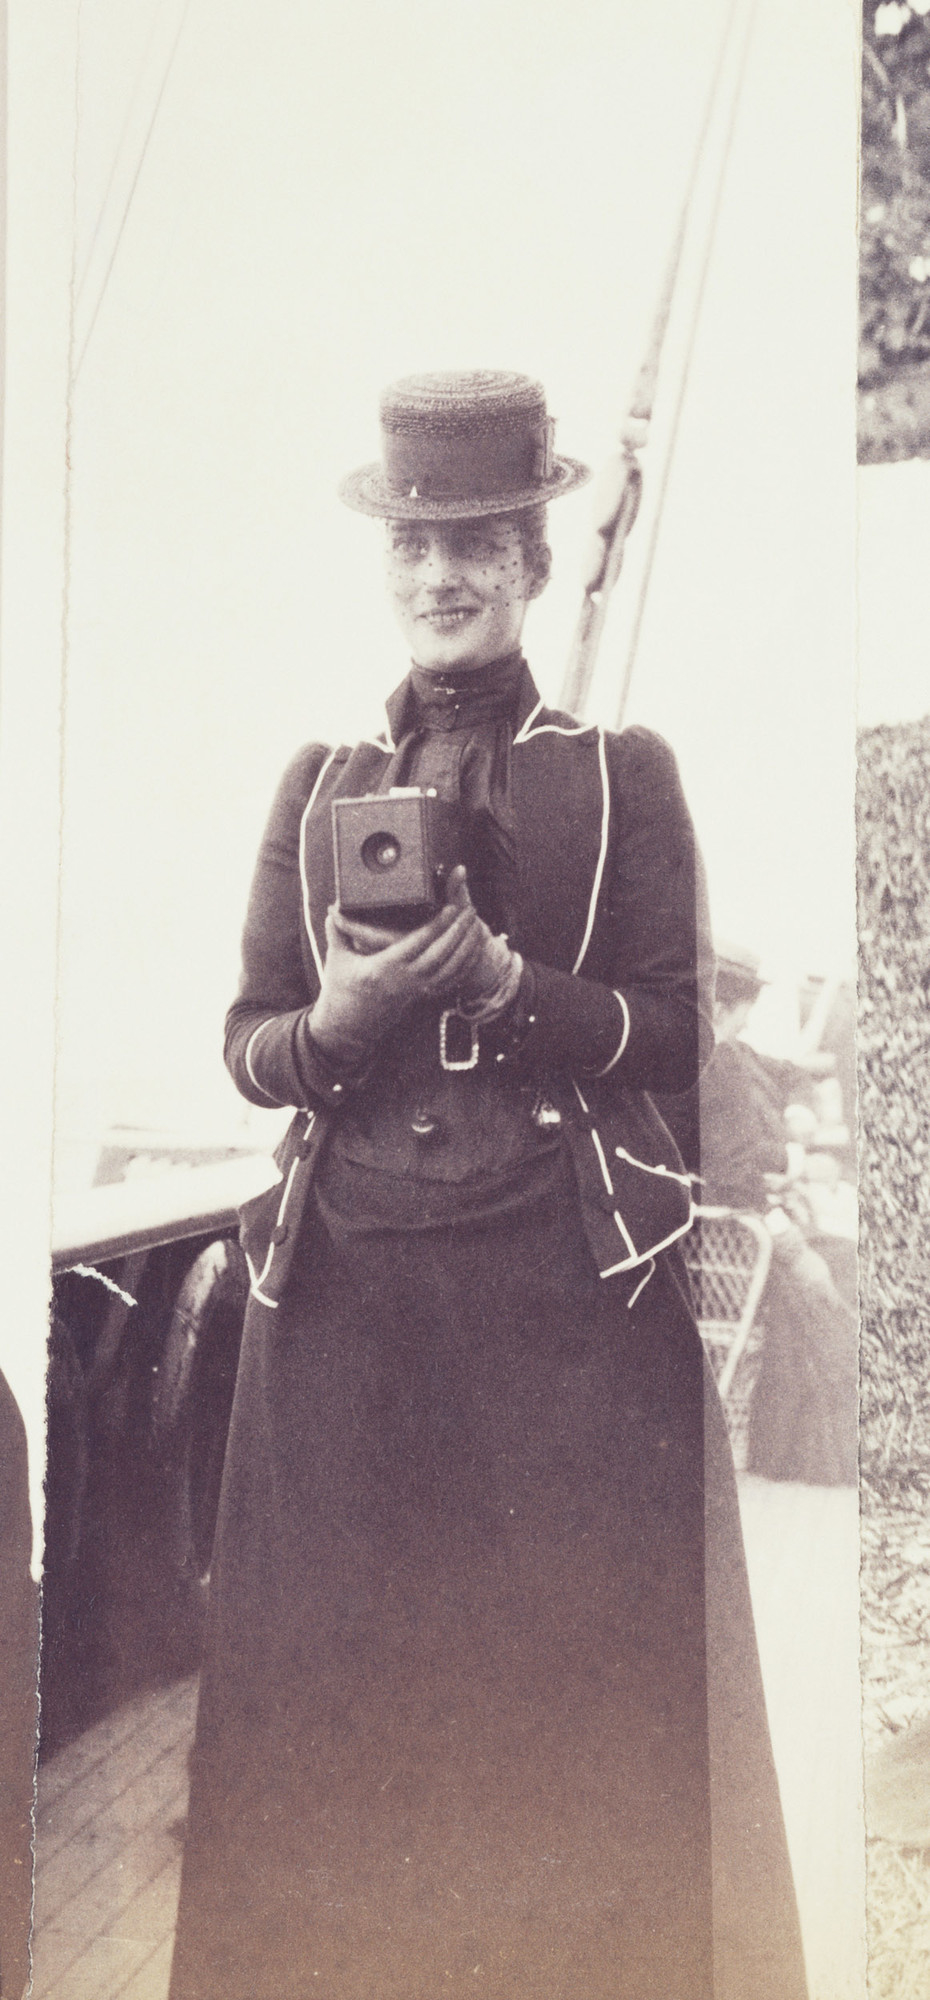 Photograph of the Princess of Wales, later Queen Alexandra, holding a No.1 Kodak camera at chest height. She is standing on the deck of a ship. <br />&nbsp;<br />The No.1 Kodak camera was introduced in 1889 and&nbsp;took small circular photographs. There